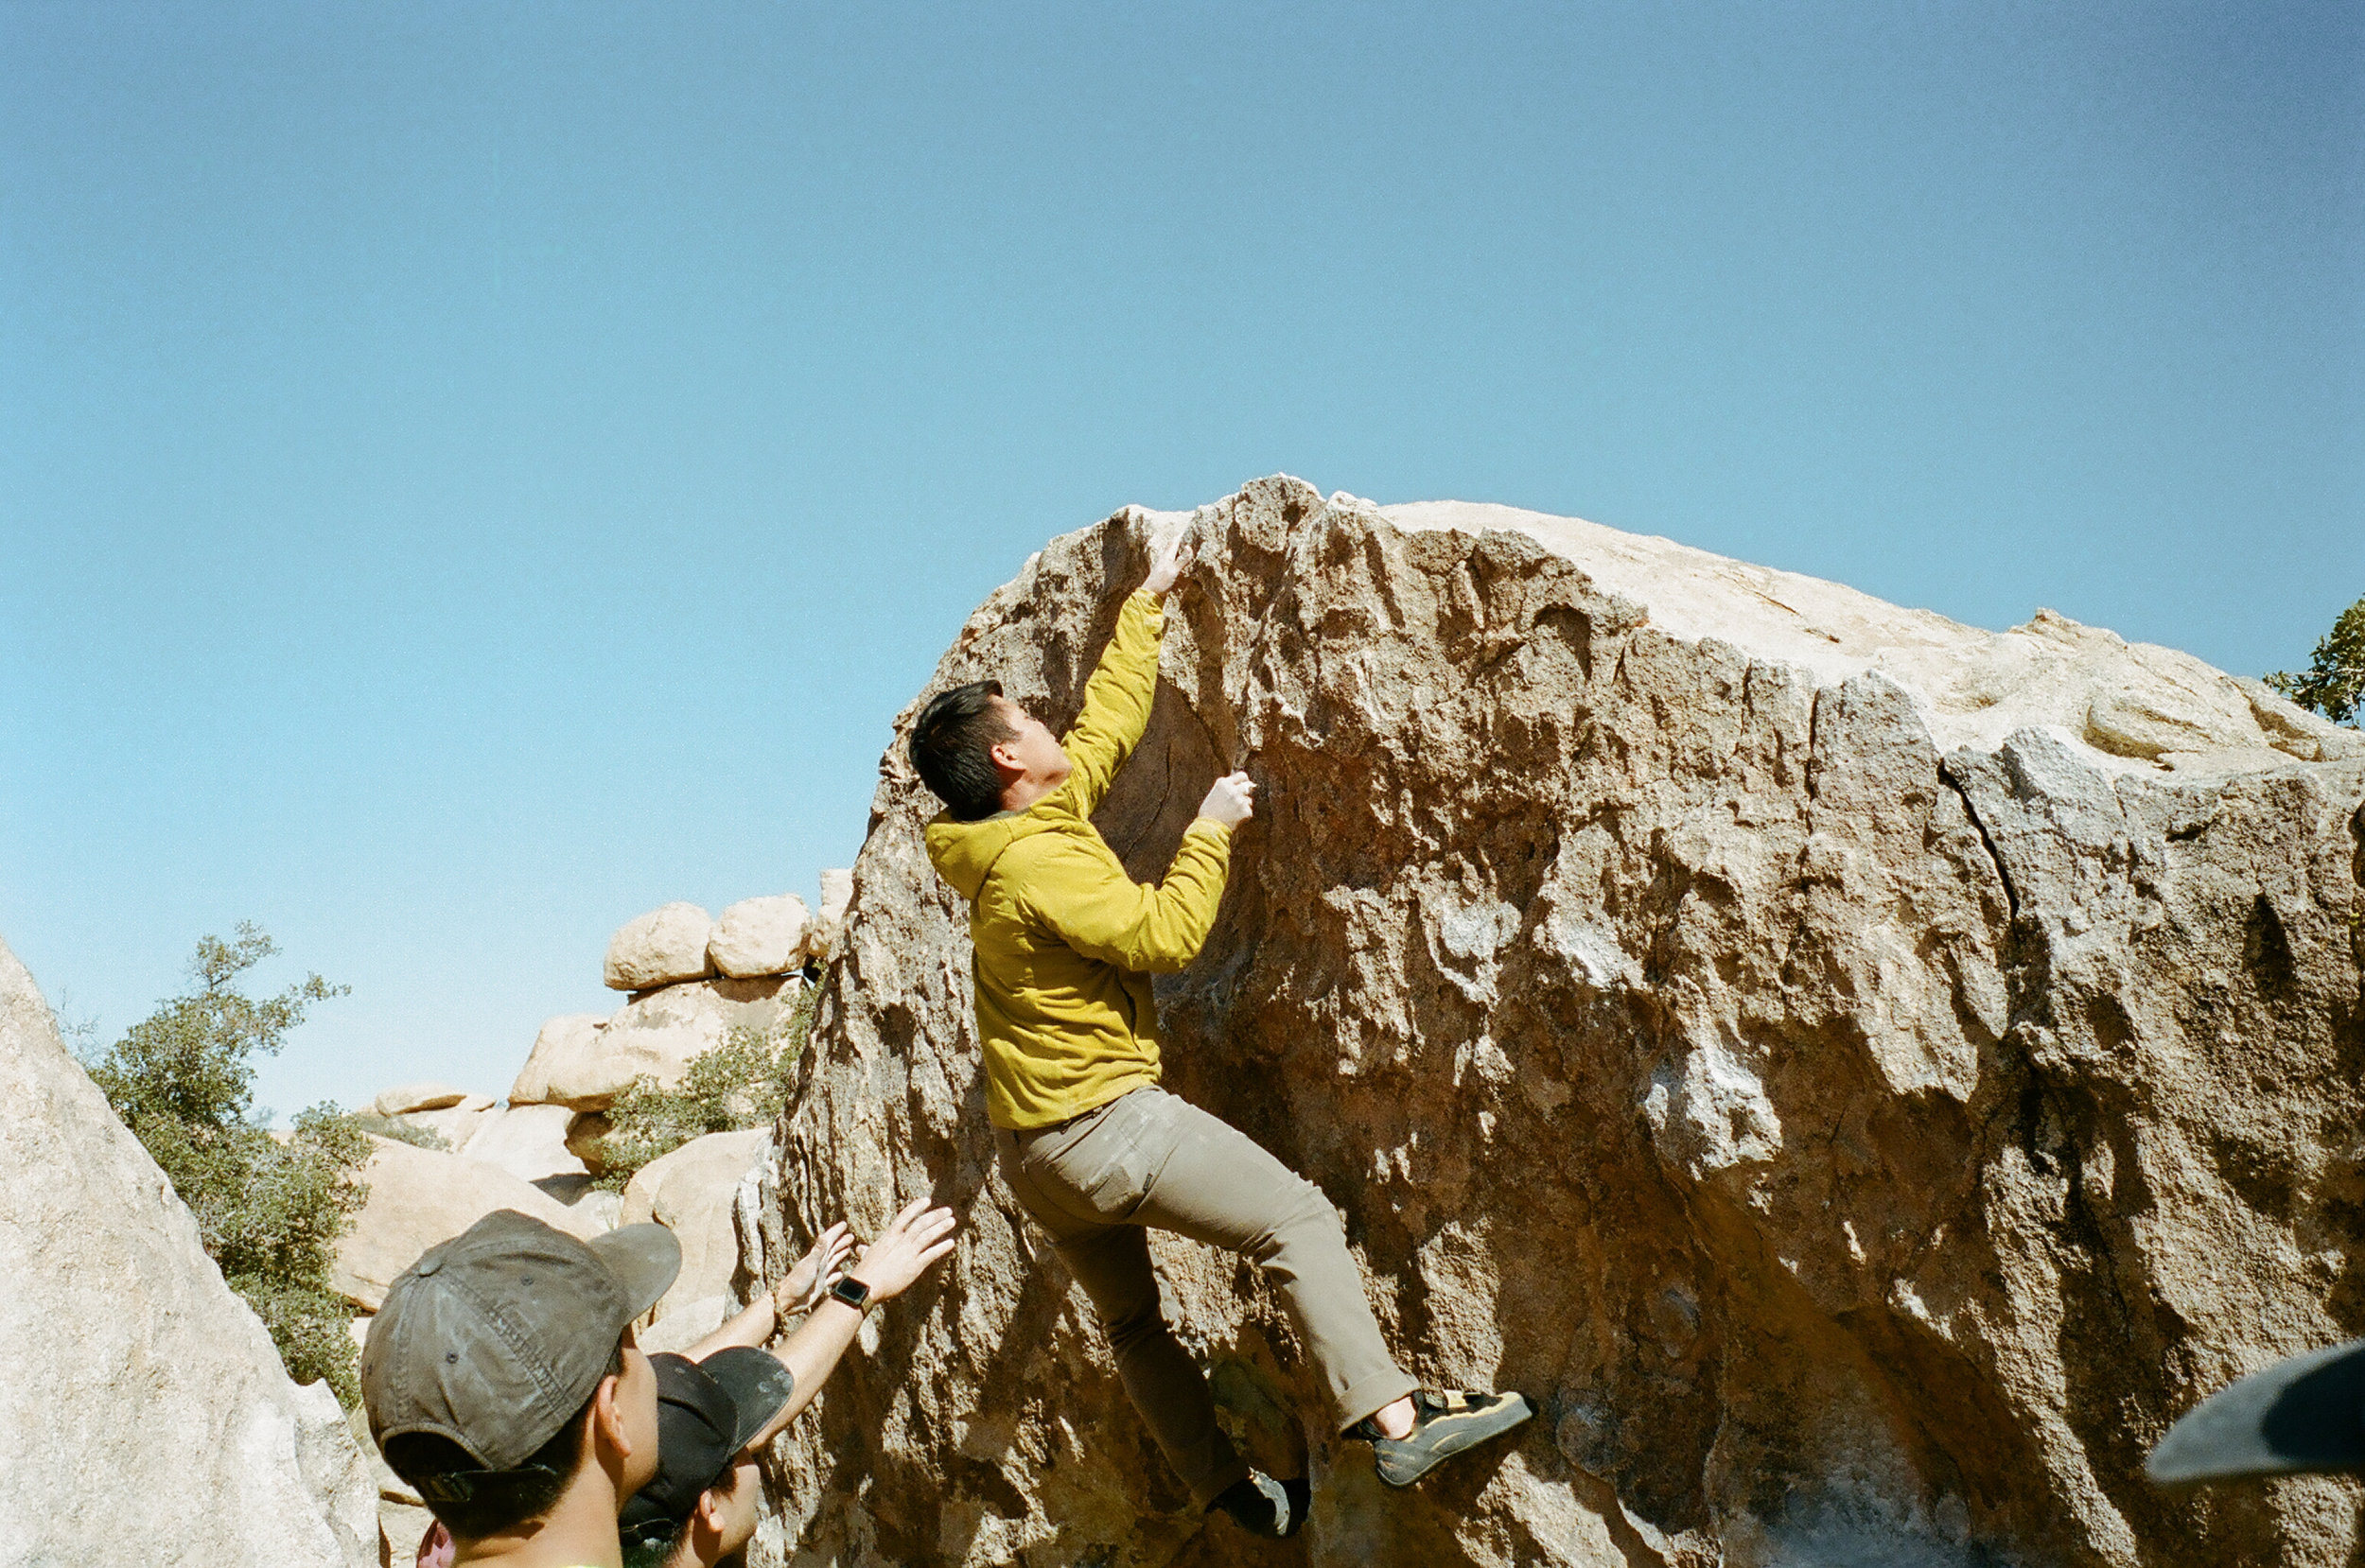 Classic V1 in Joshua Tree